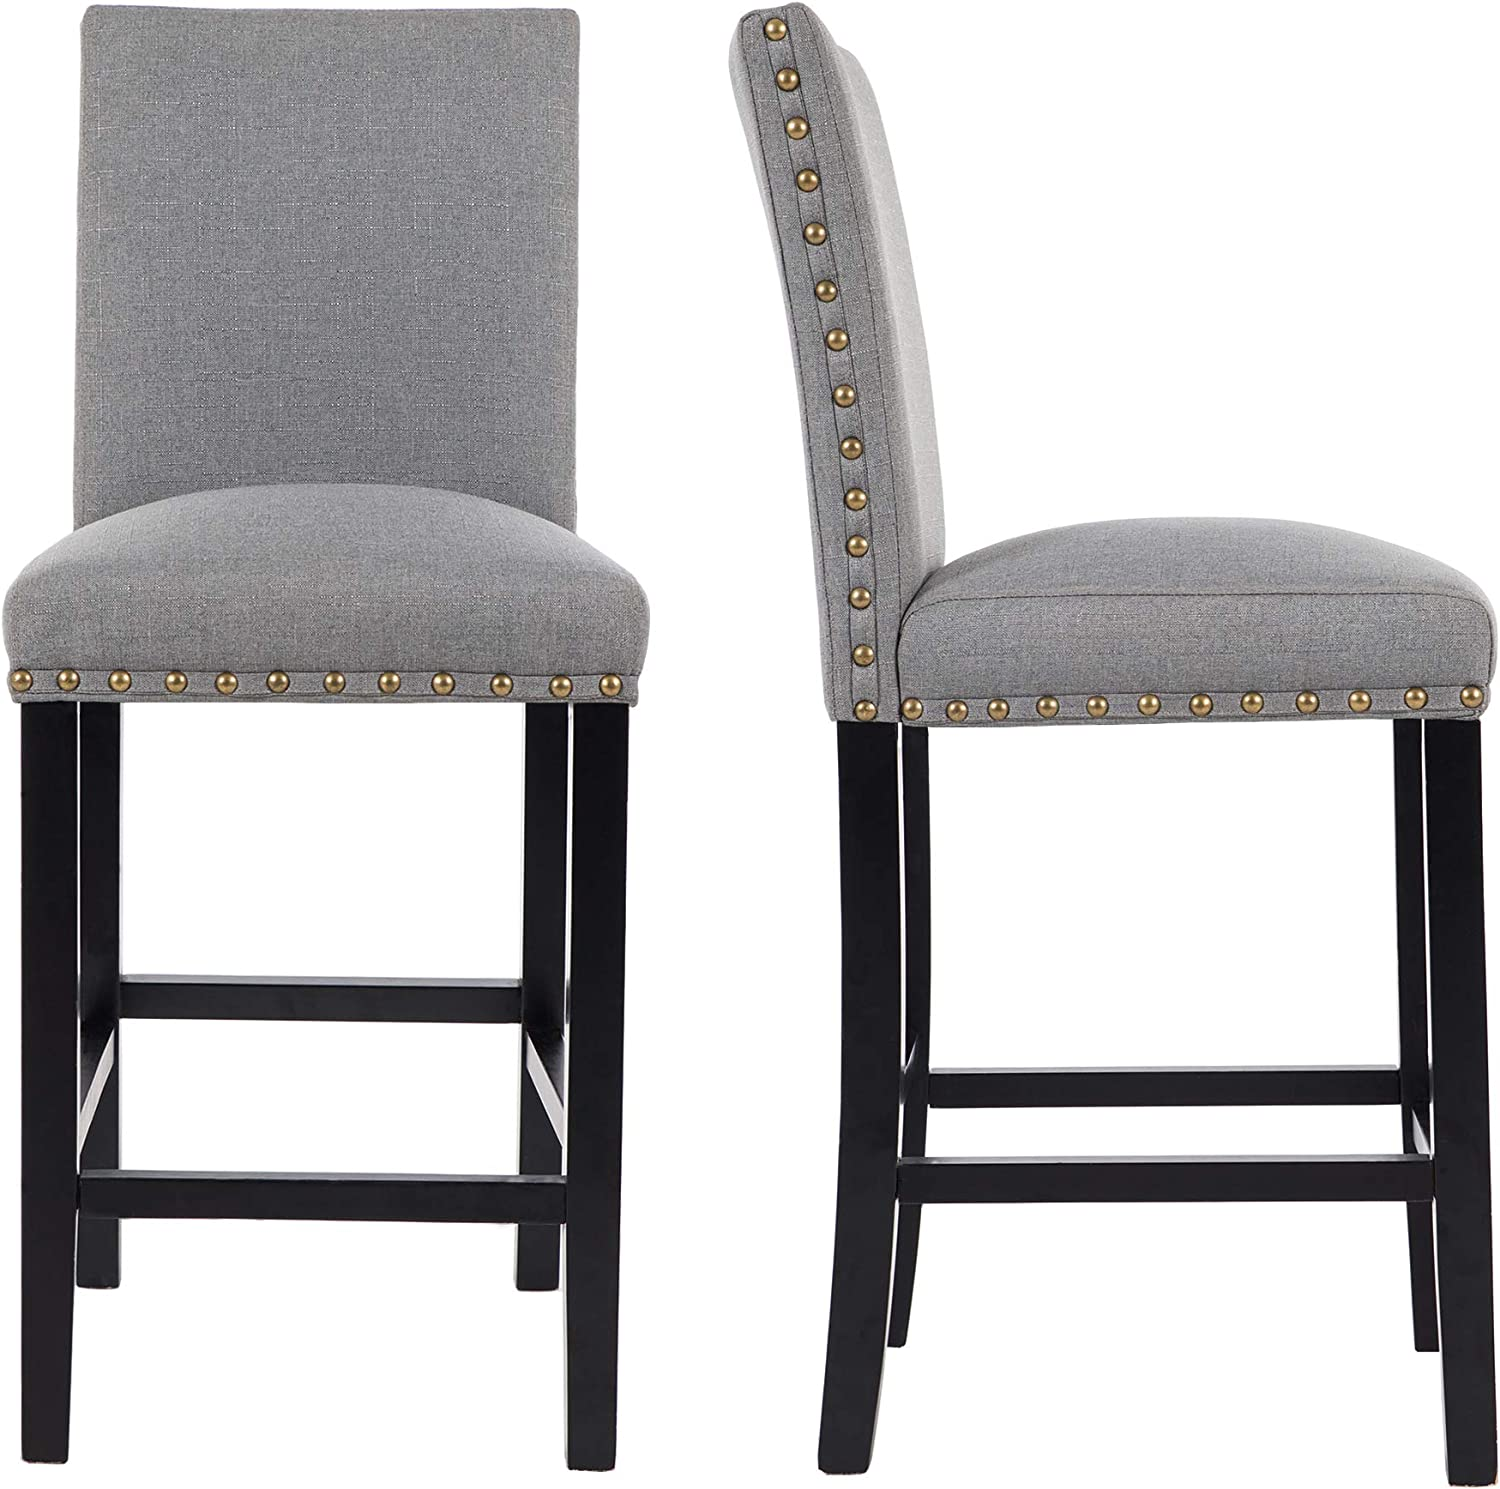 Max 65% OFF GOTMINSI Nailhead Super popular specialty store 24 Inches Counter Stools Height Ba Upholstered